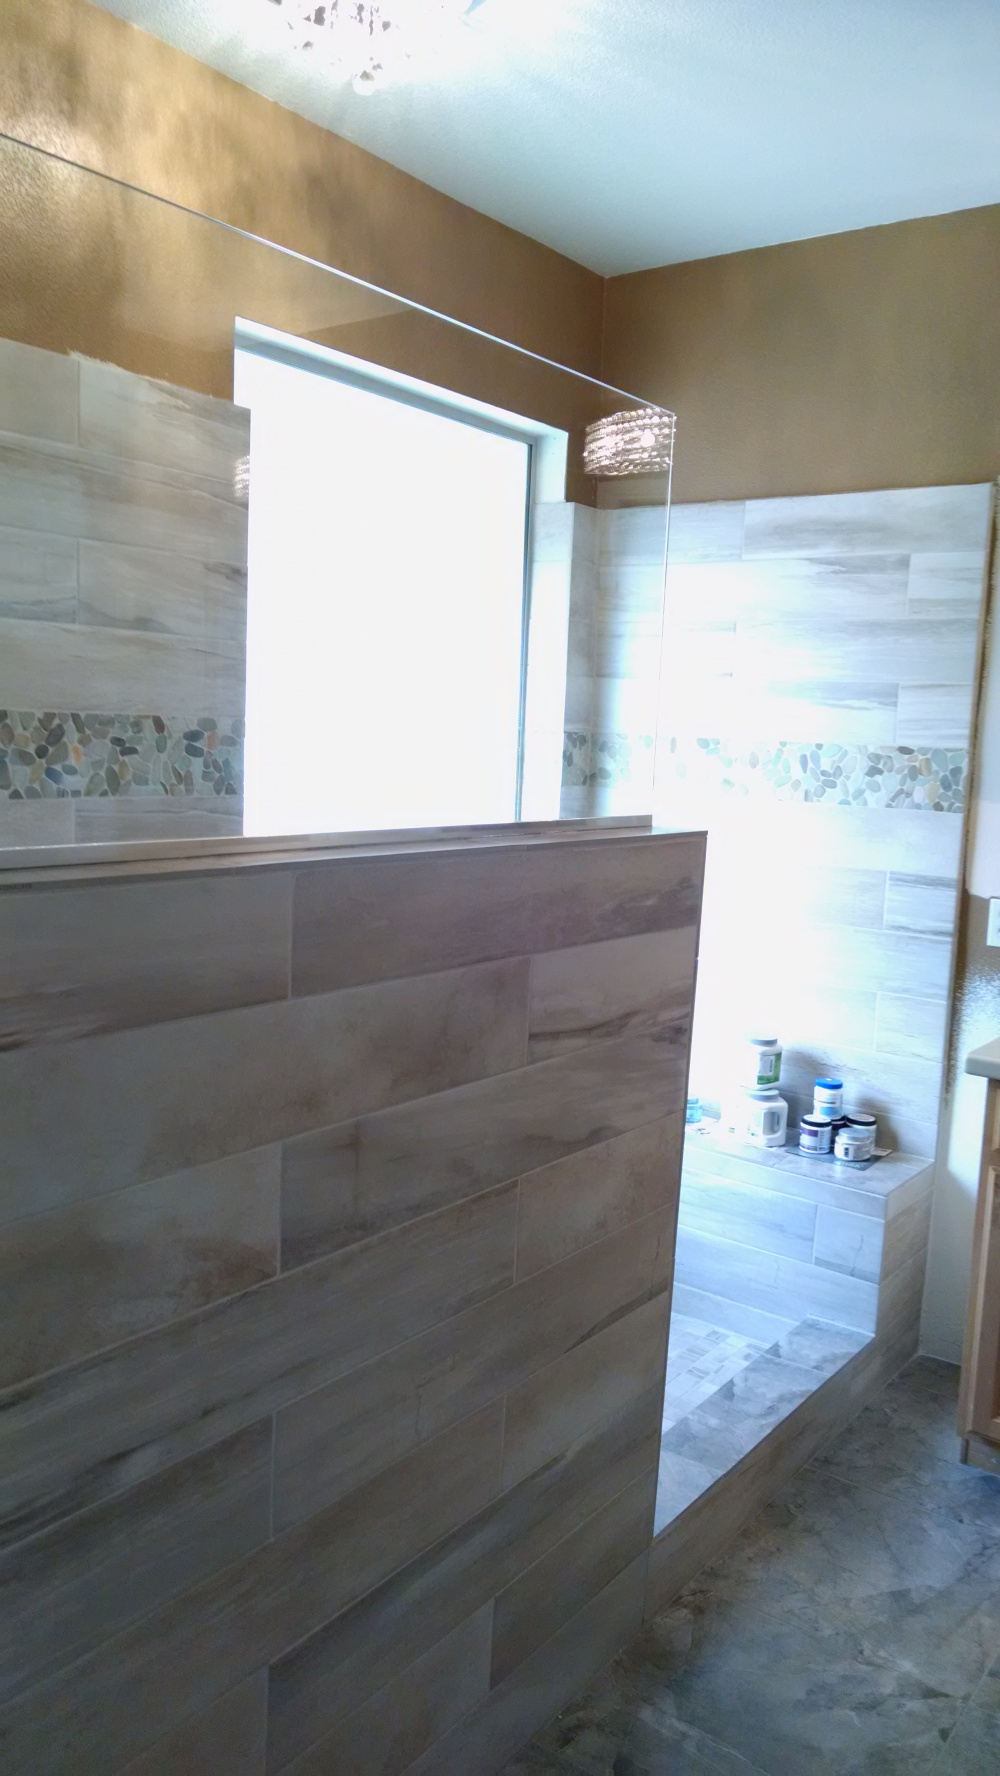 Phoenix Bathroom Remodel Unique Home Remodeling Phoenix  Champion Remodeling Llc. 2017